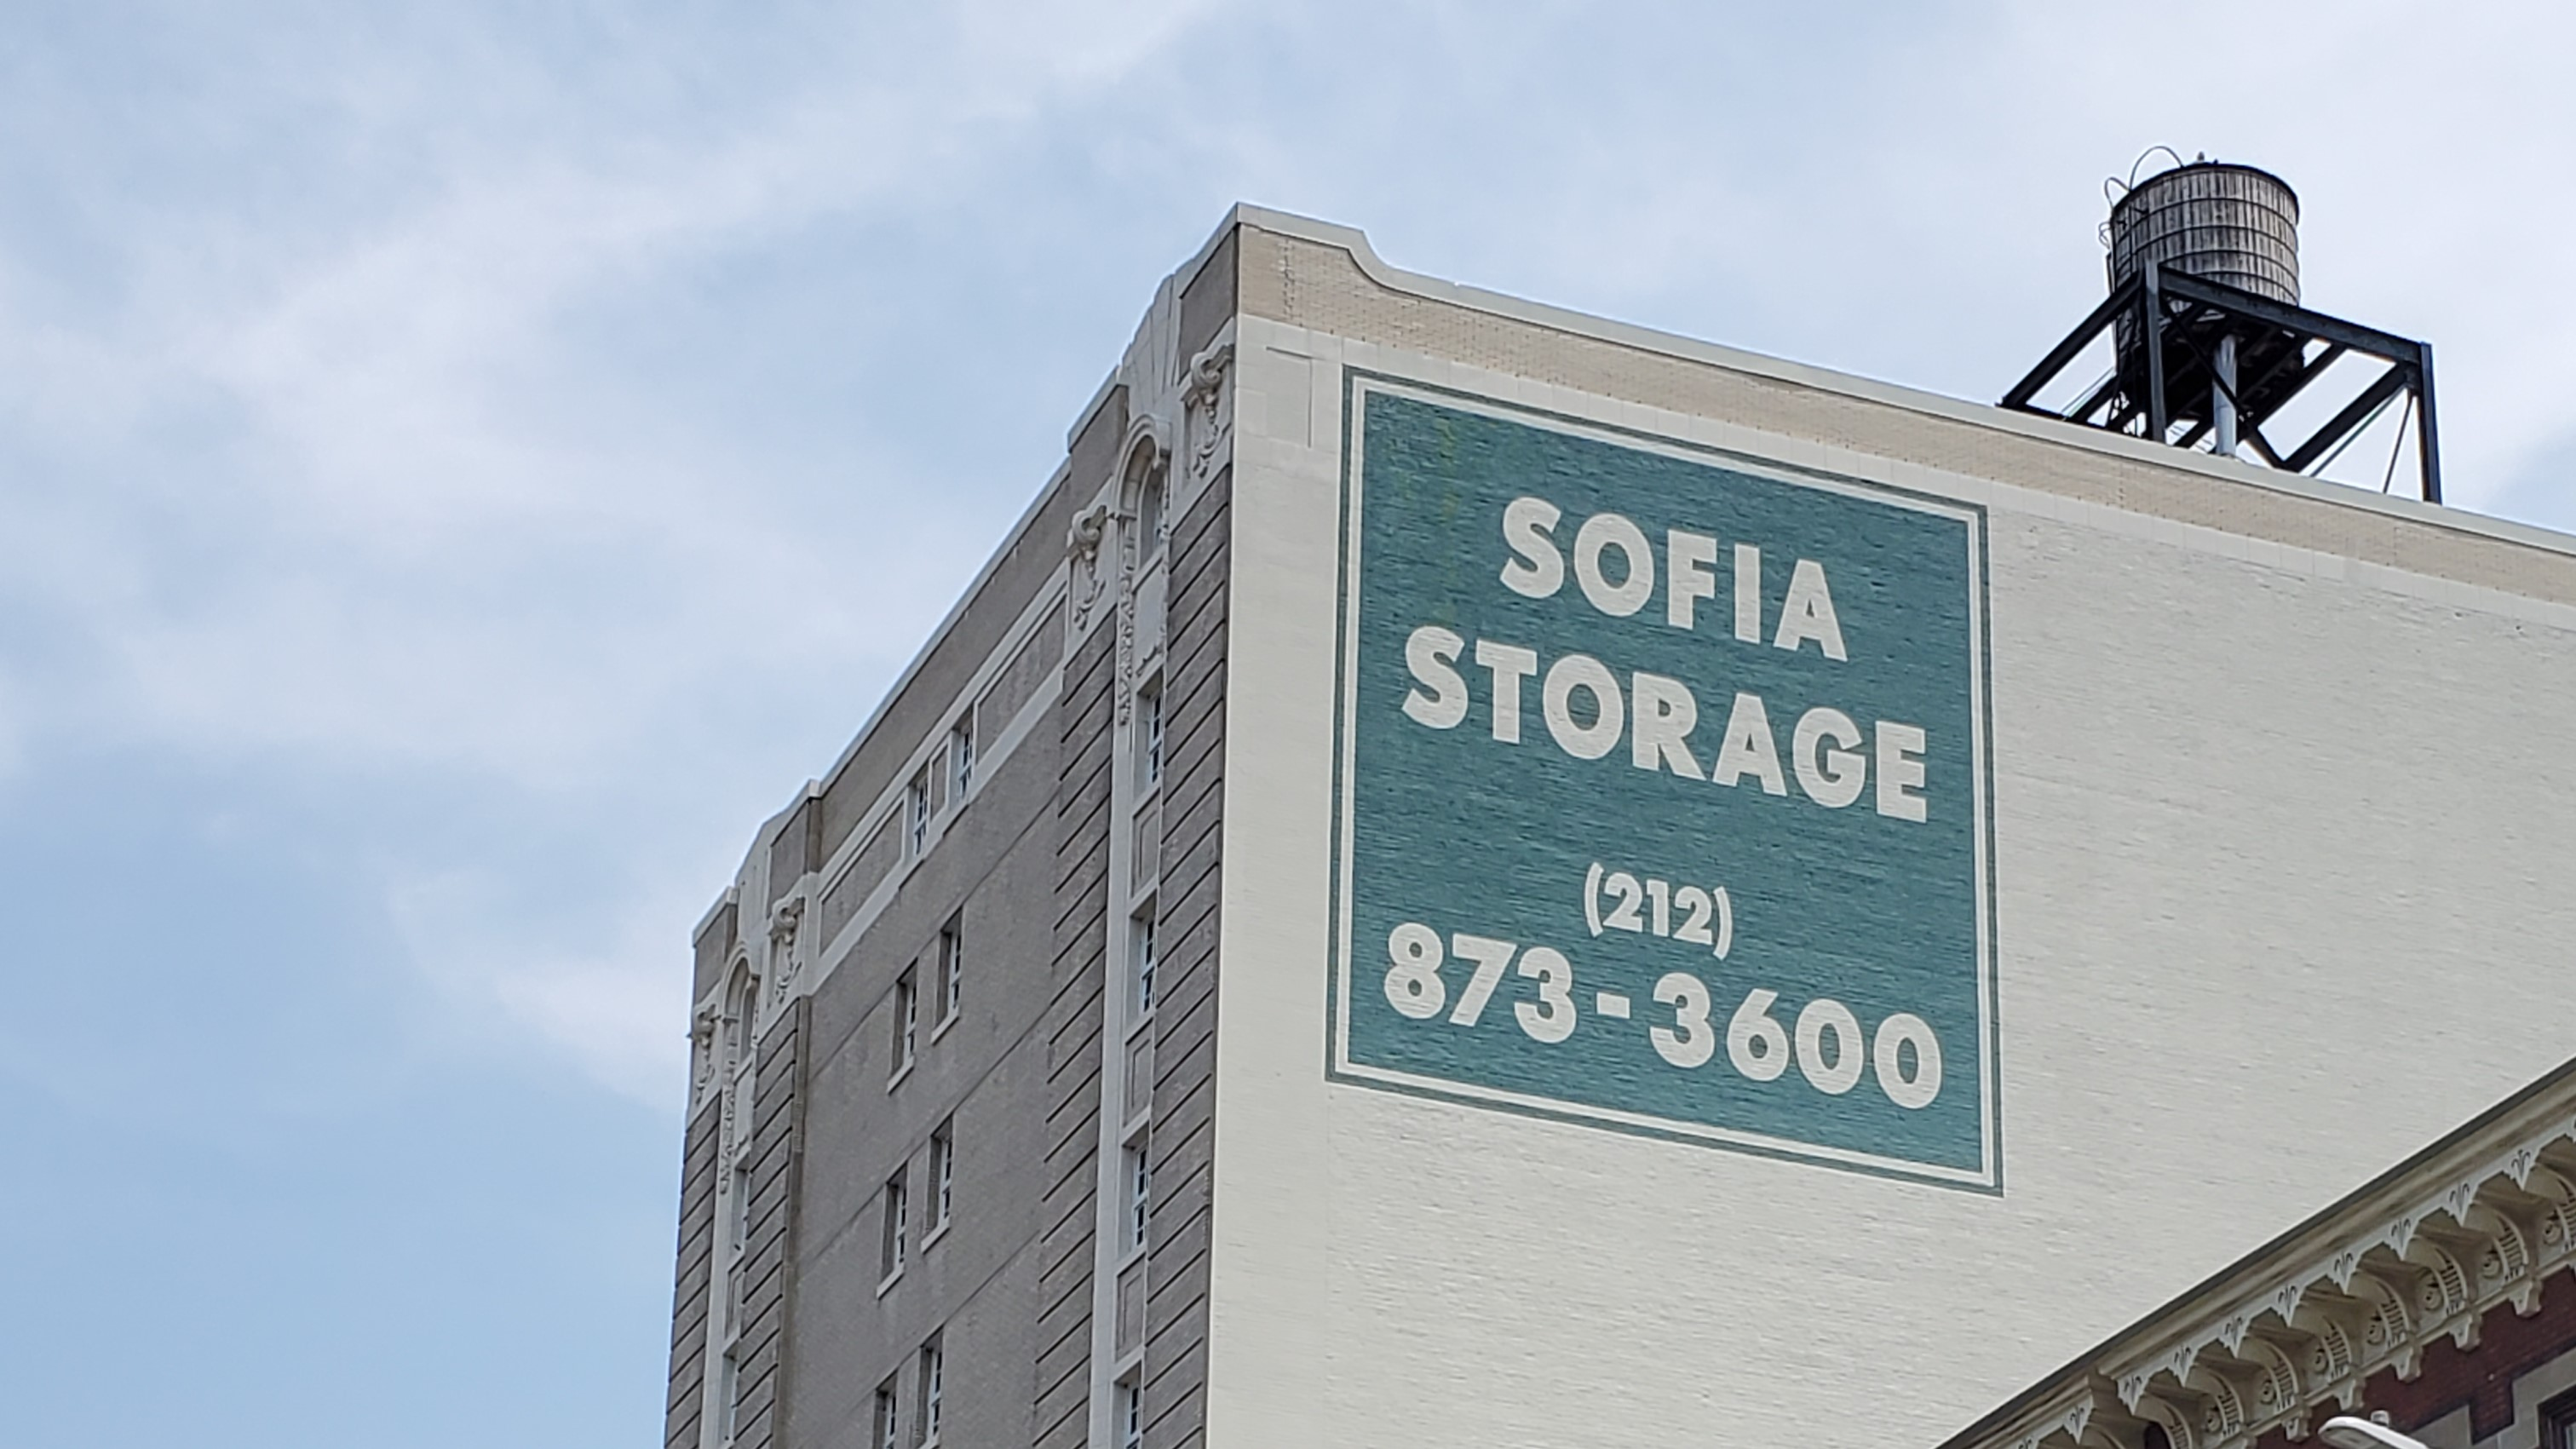 sofia storage sign on the side of a building